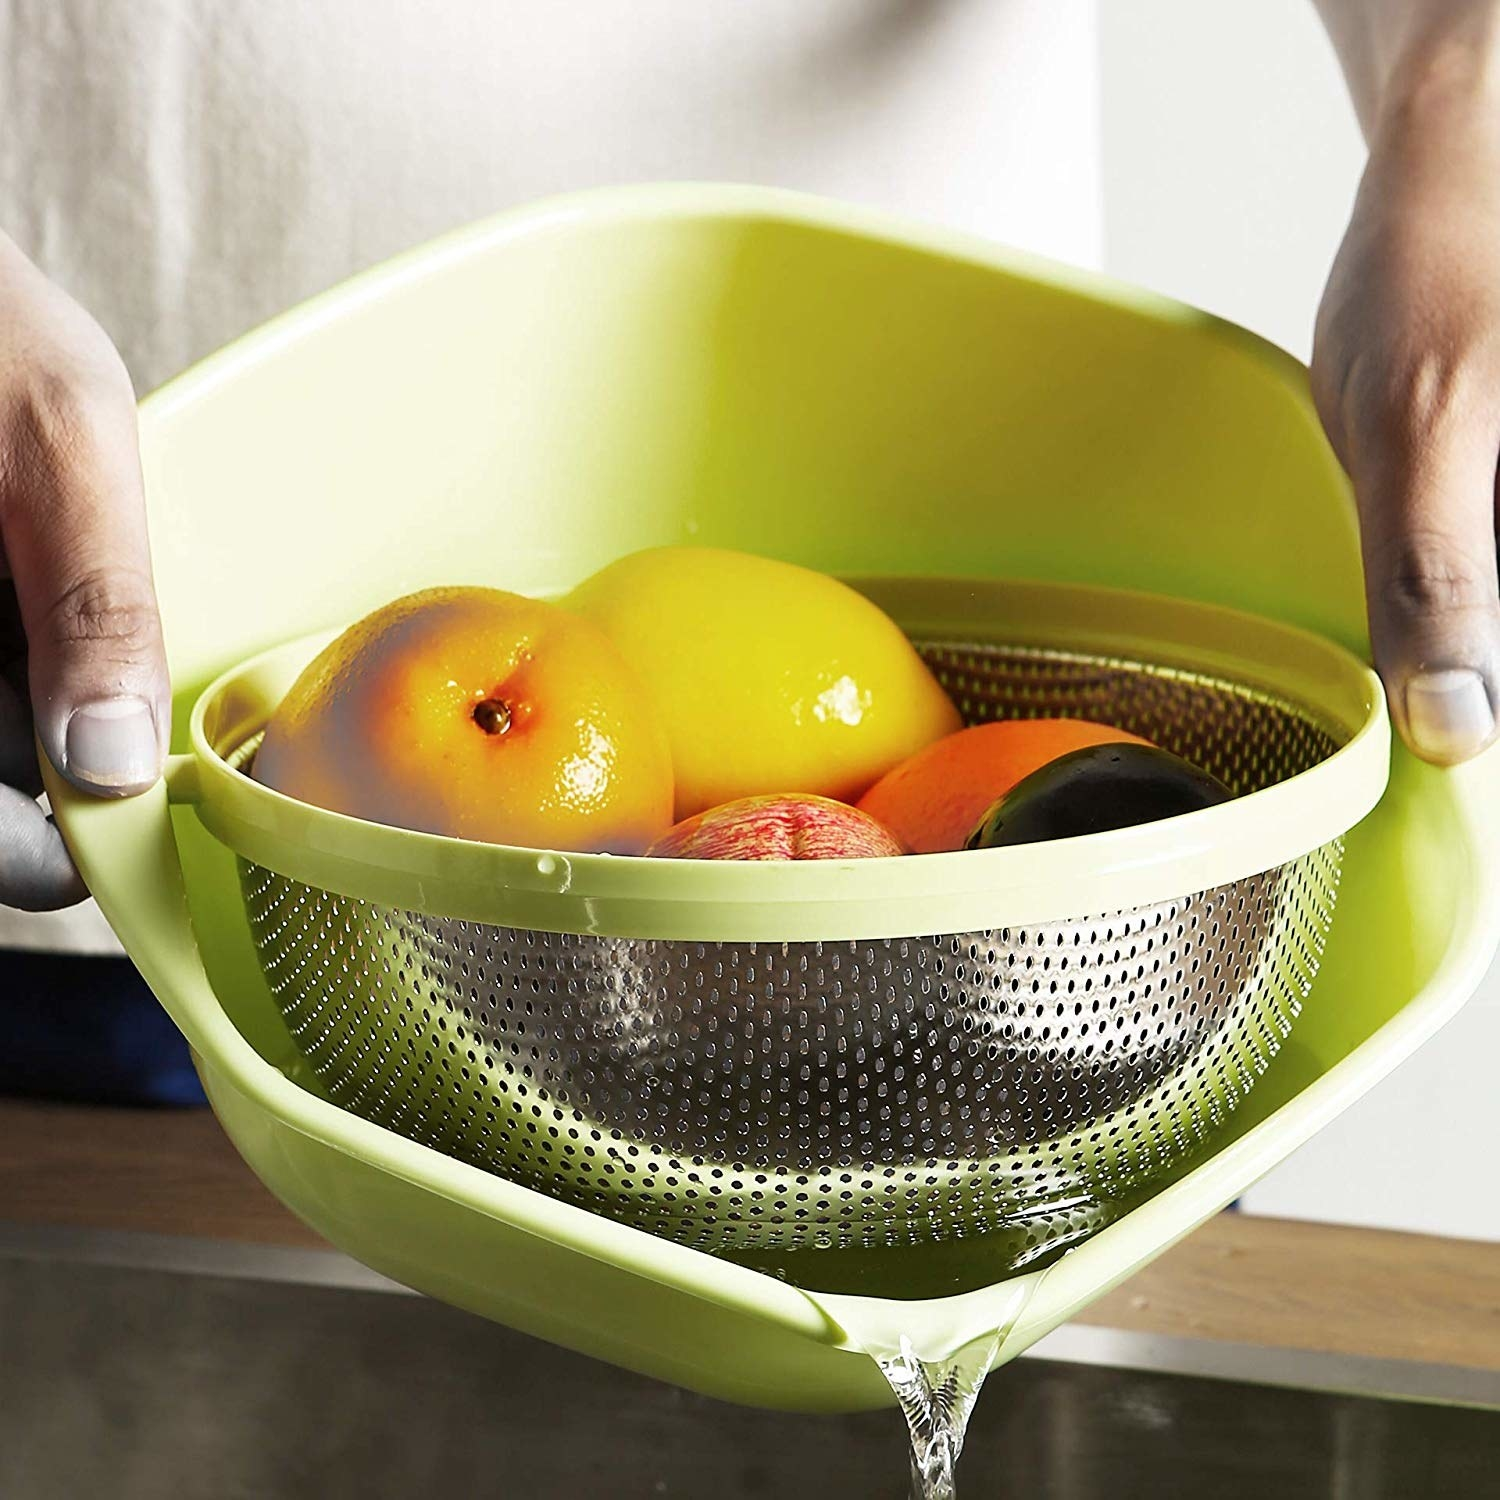 The green bowl with metal colander suspended inside, with fruit being washed inside of it